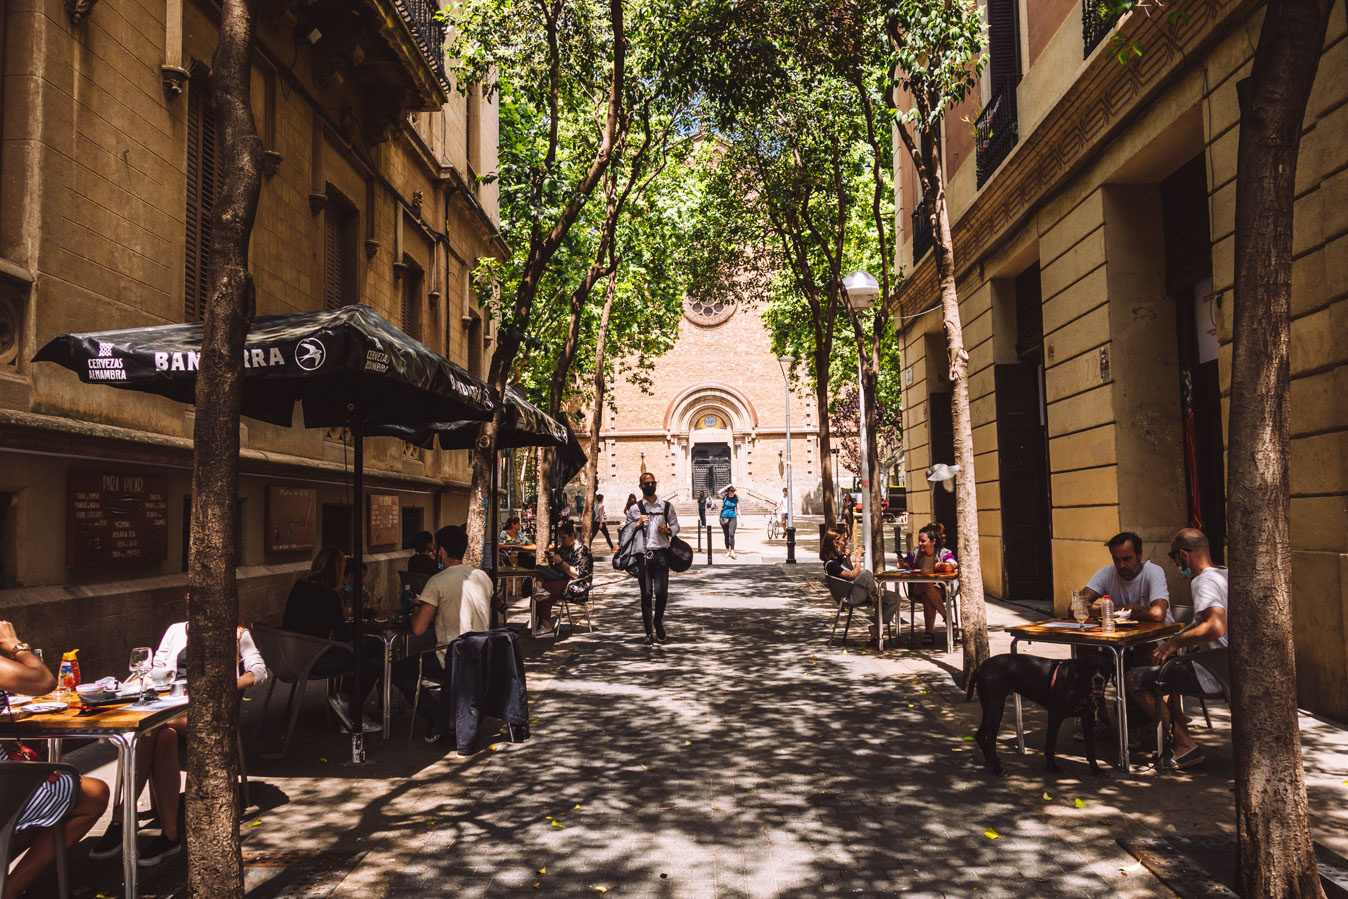 Barcelona has a relaxed local atmosphere